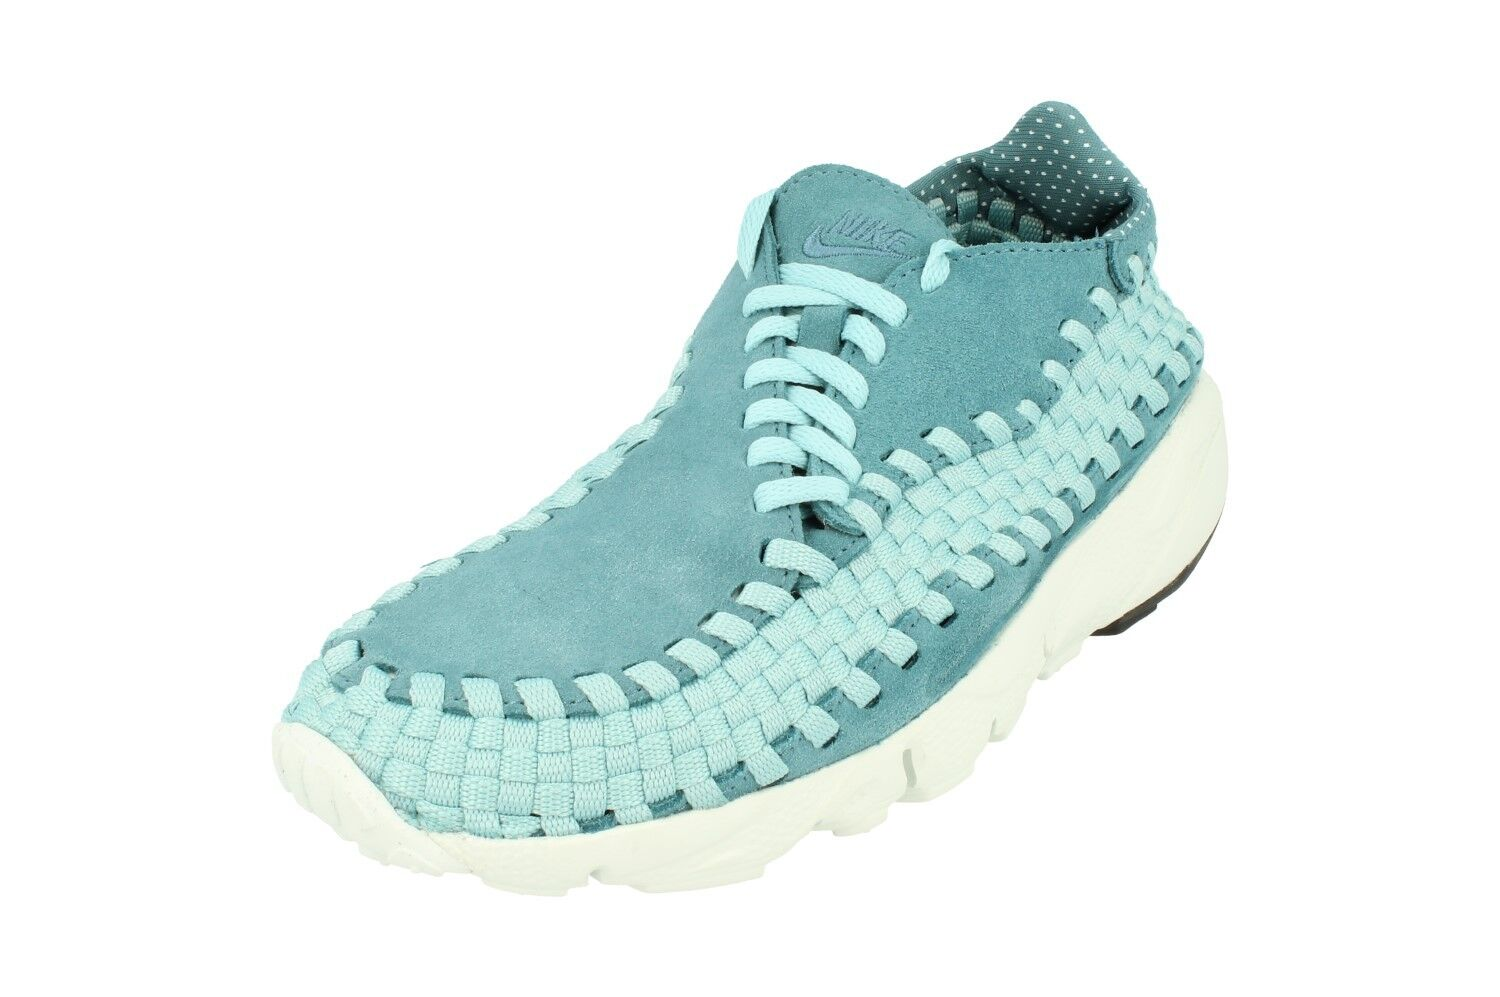 Nike air footscape formatori tessuti nm Uomo correndo formatori footscape 875797 scarpe scarpe 002 725604